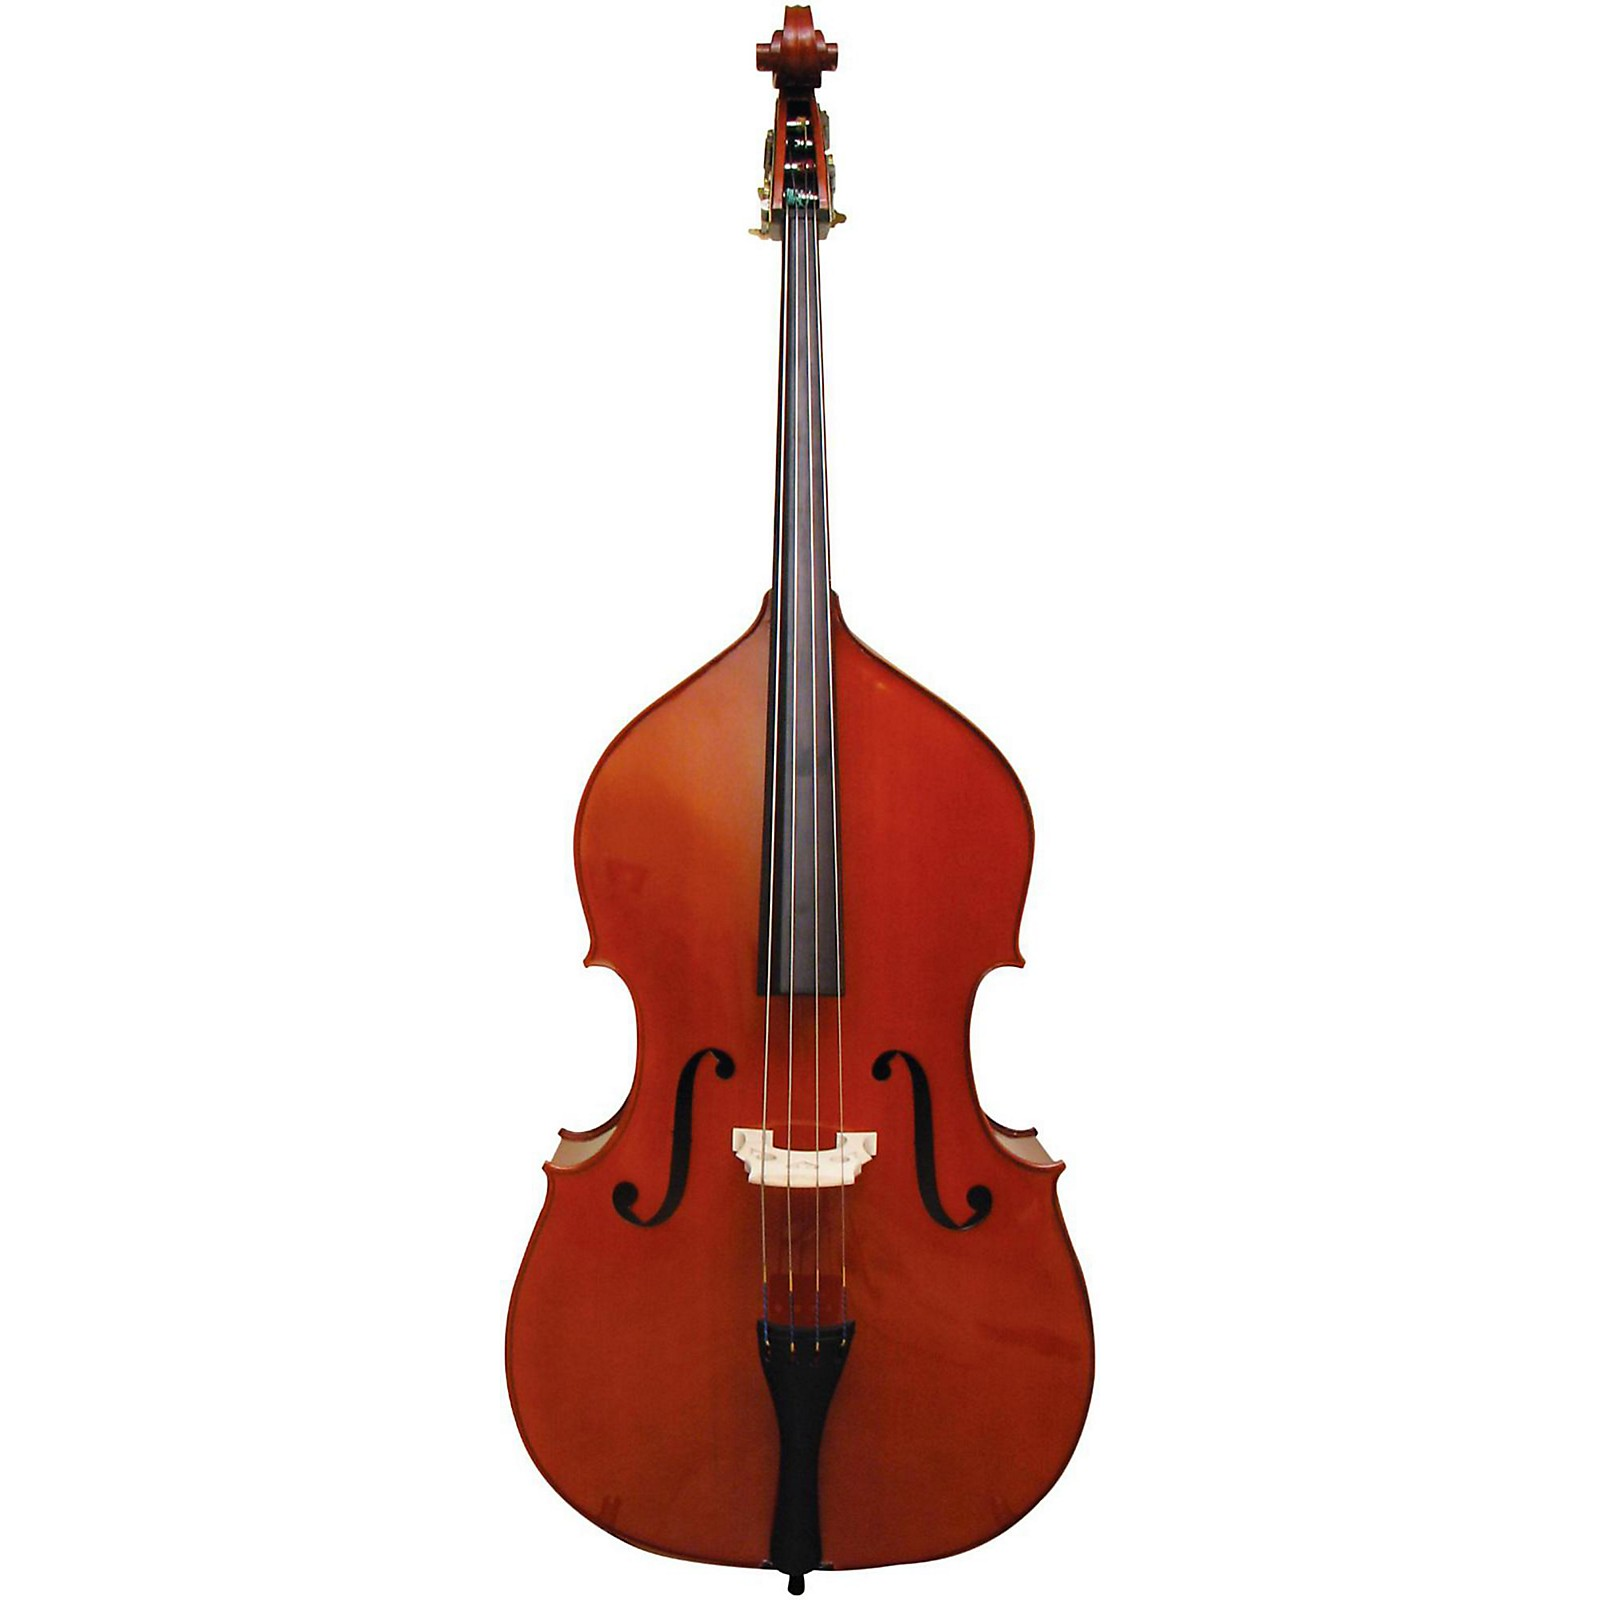 Maple Leaf Strings Model 130 Craftsman Collection Stradivarius Double Bass